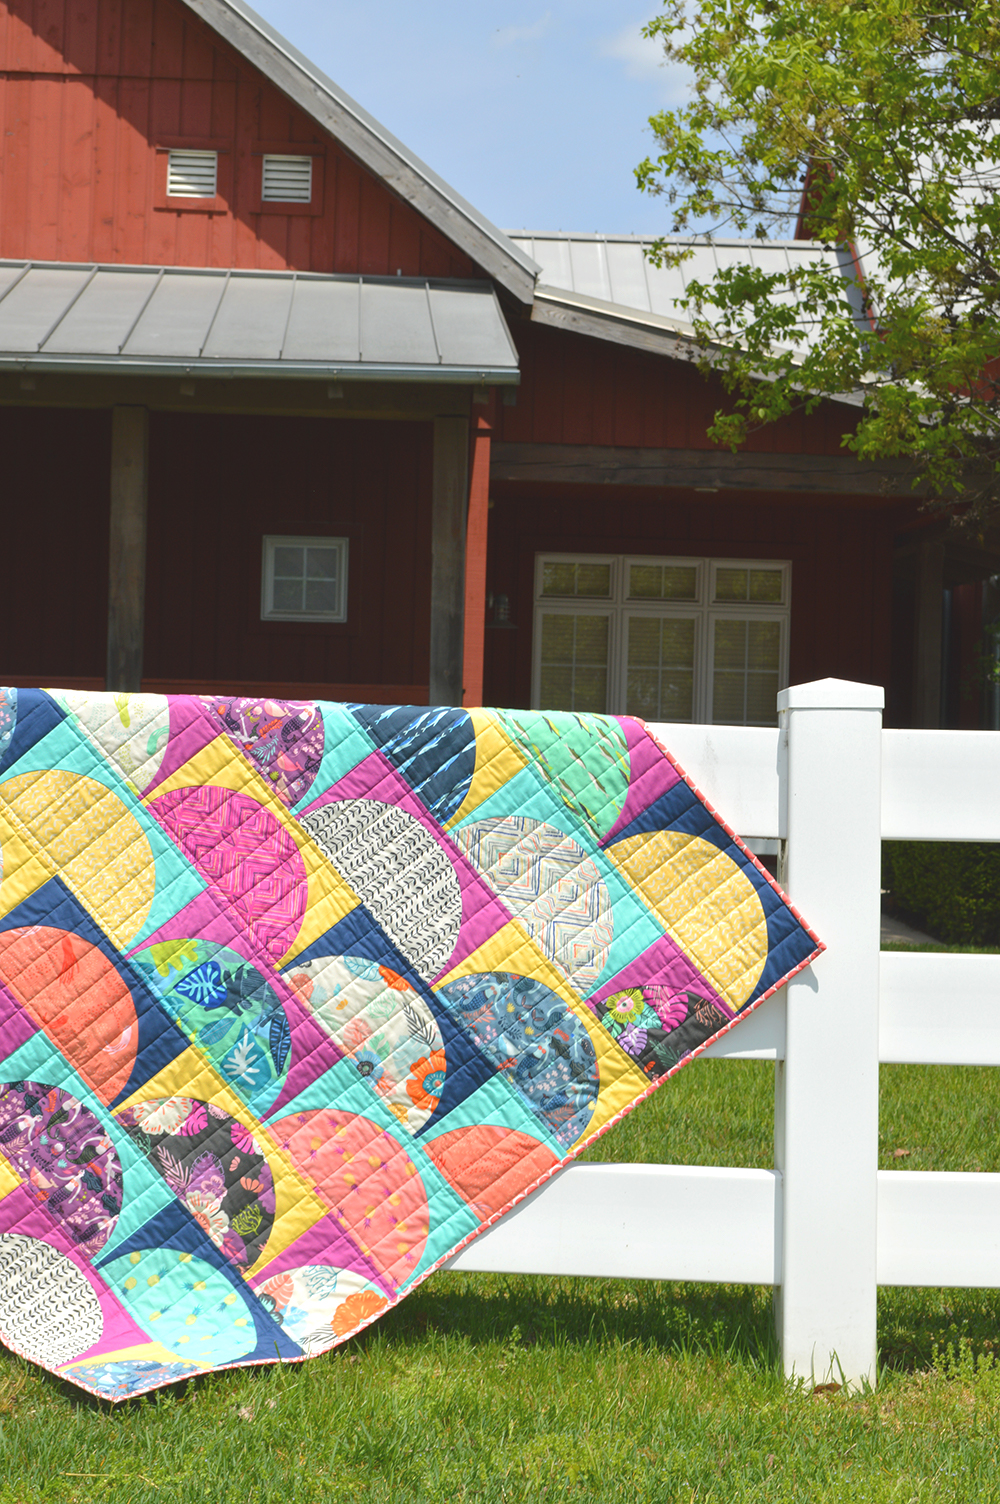 Curved piecing Sirena quilt by Sharon McConnell using Sirena fabrics by Art Gallery FAbrics